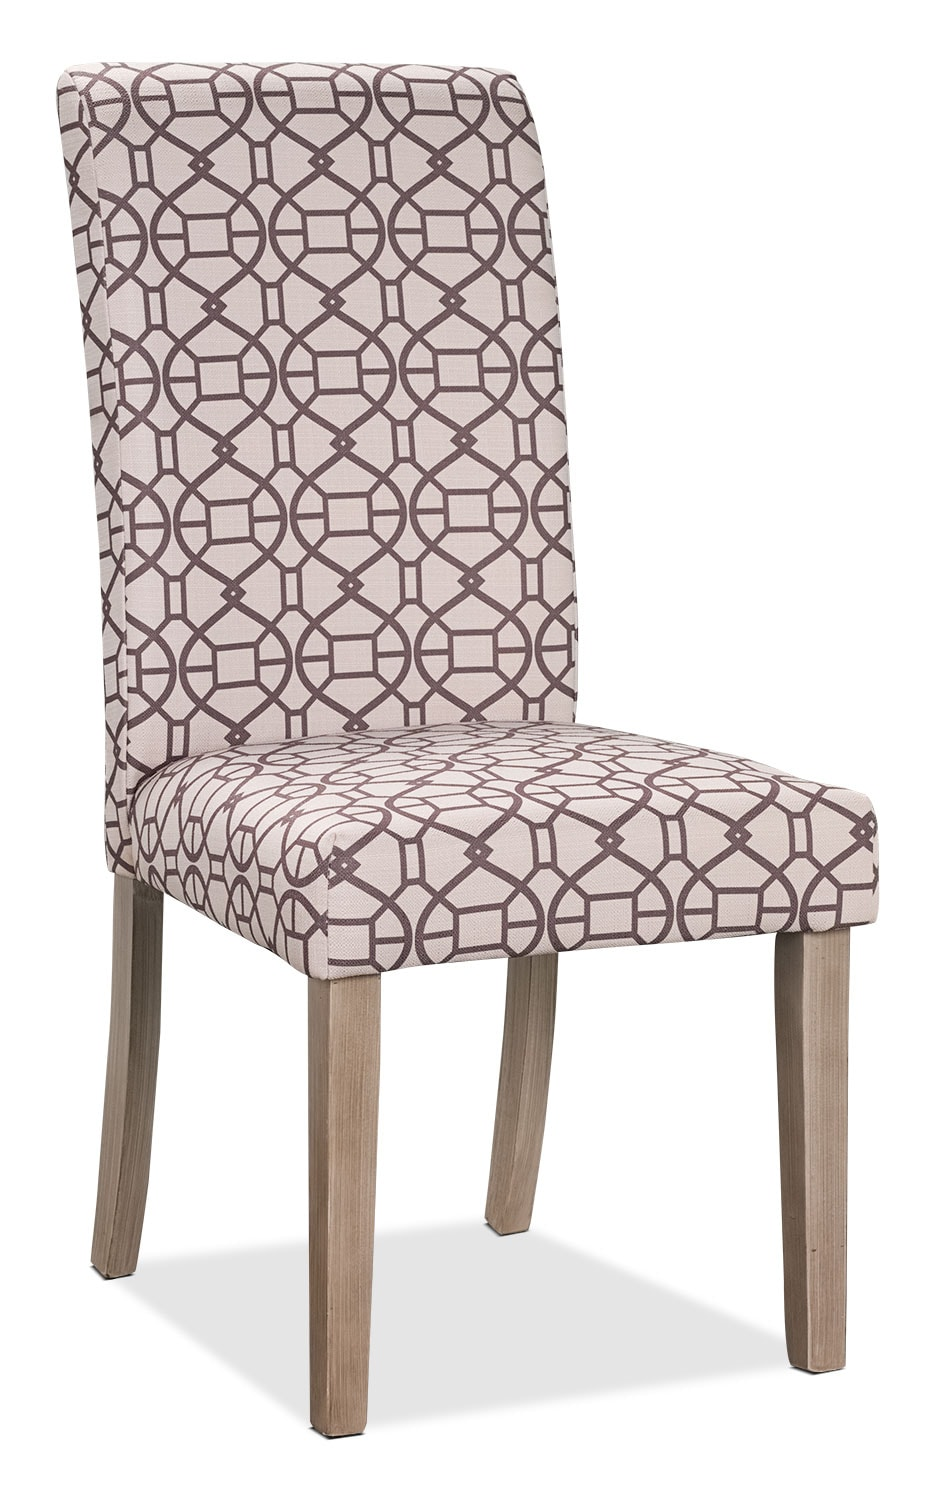 Kalen Dining Chair - Chocolate